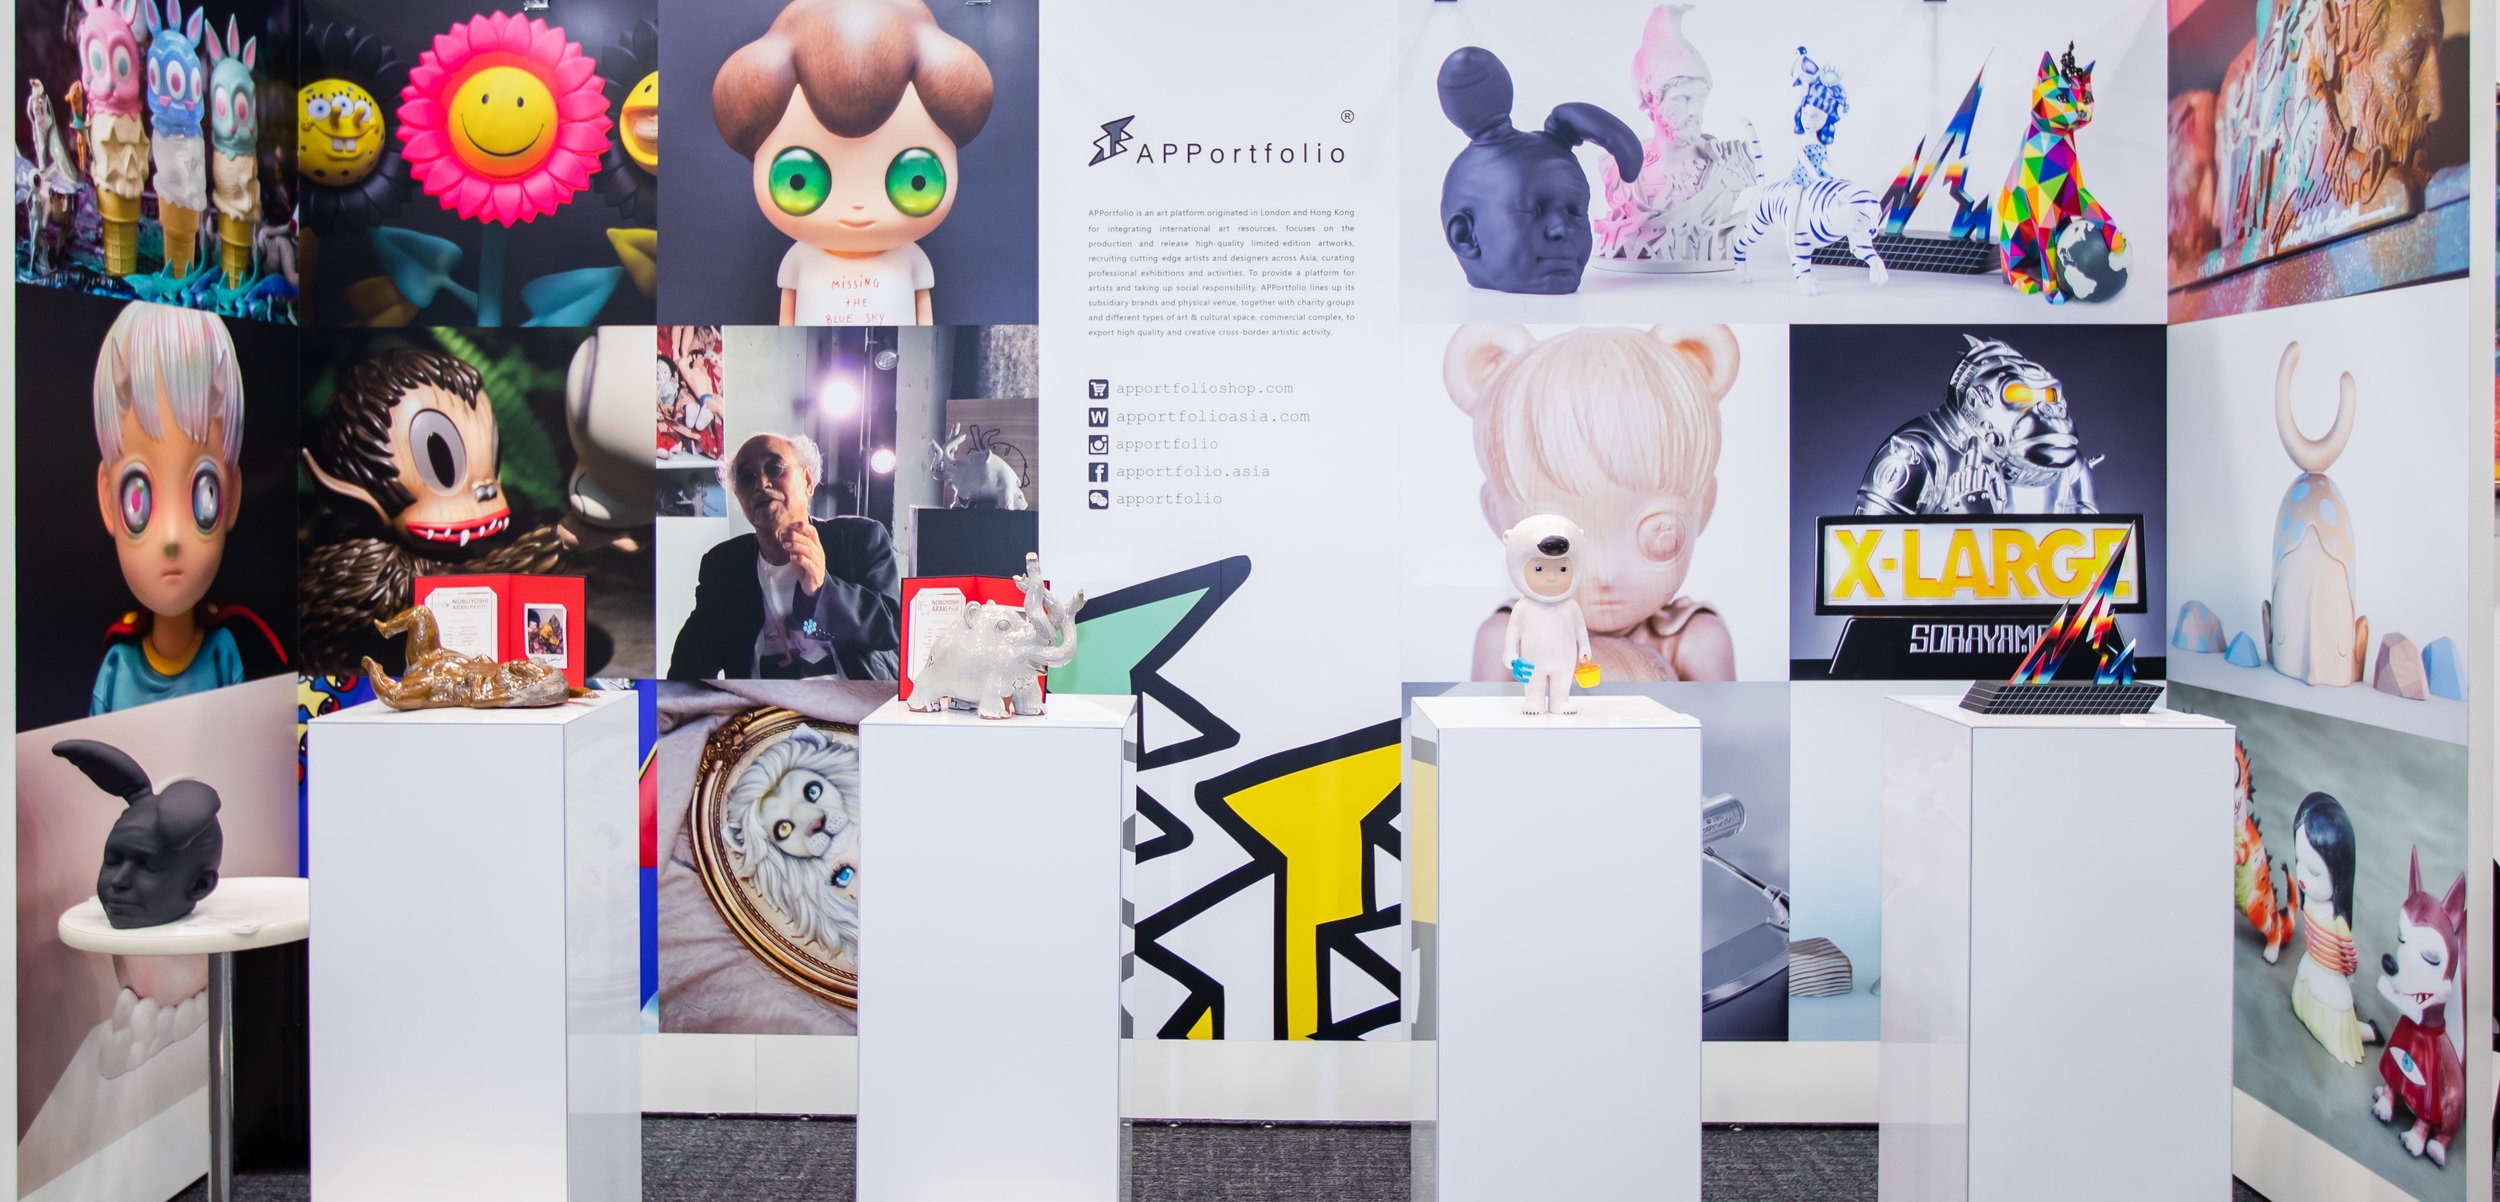 EXHIBIT & SELL - UNIQUE OPPORTUNITY TO EXHIBIT AND SELL YOUR ART AT ONE OF JAPAN'S BIGGEST ART FAIR